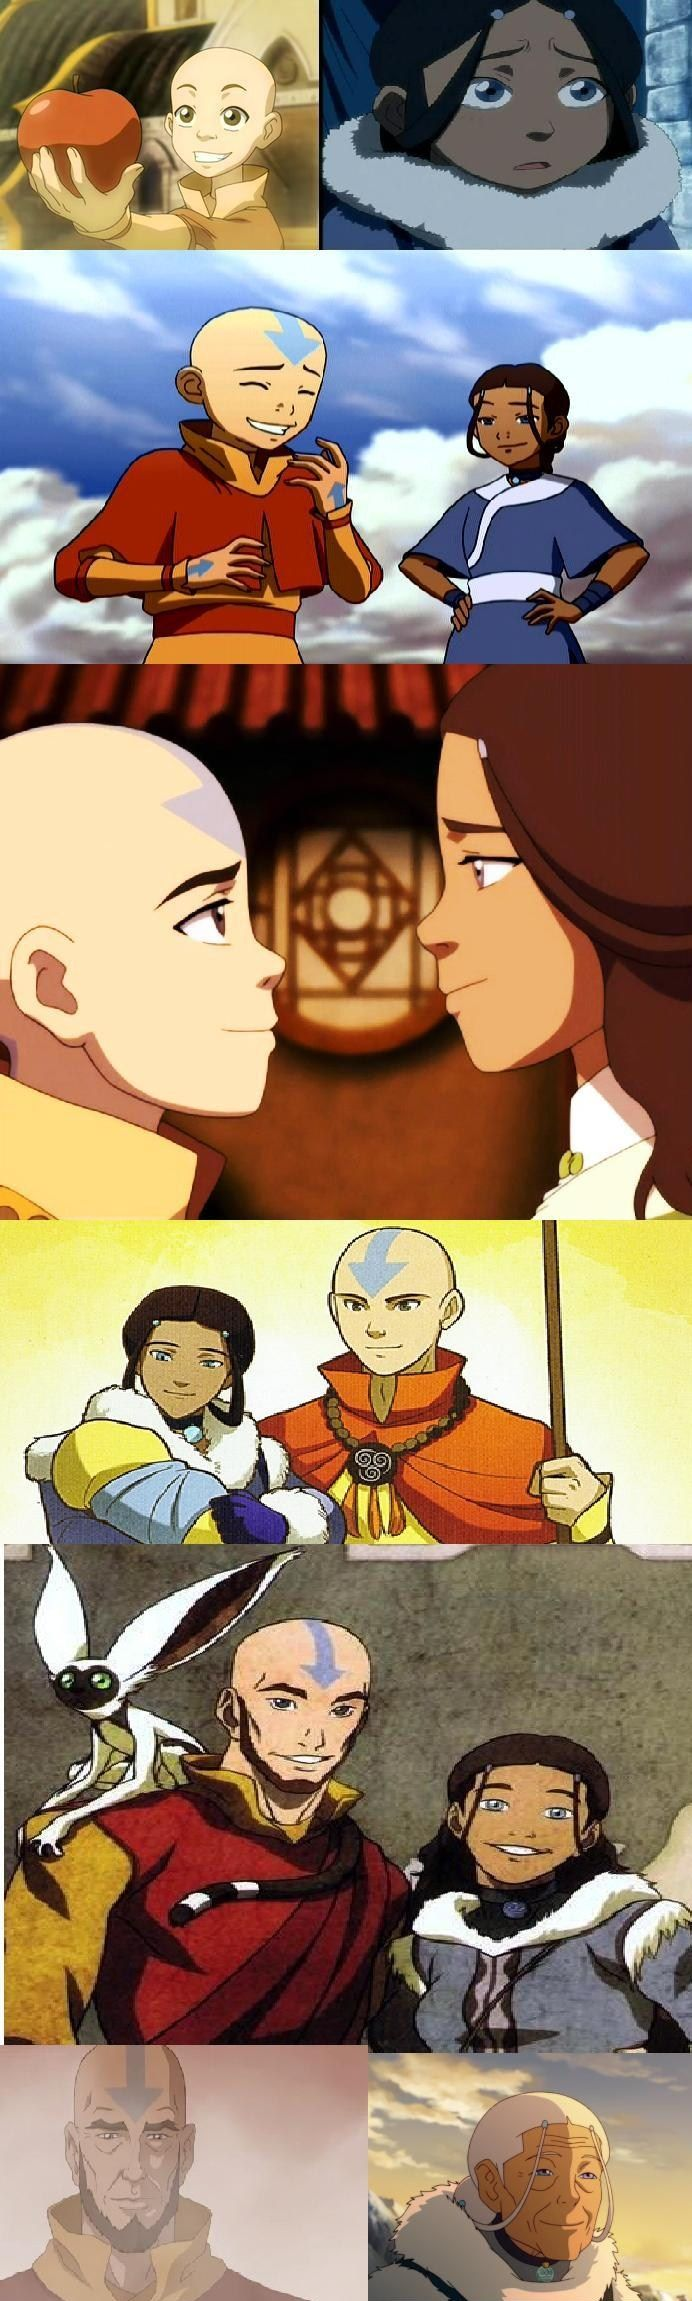 Aang and Katara through the years! <3